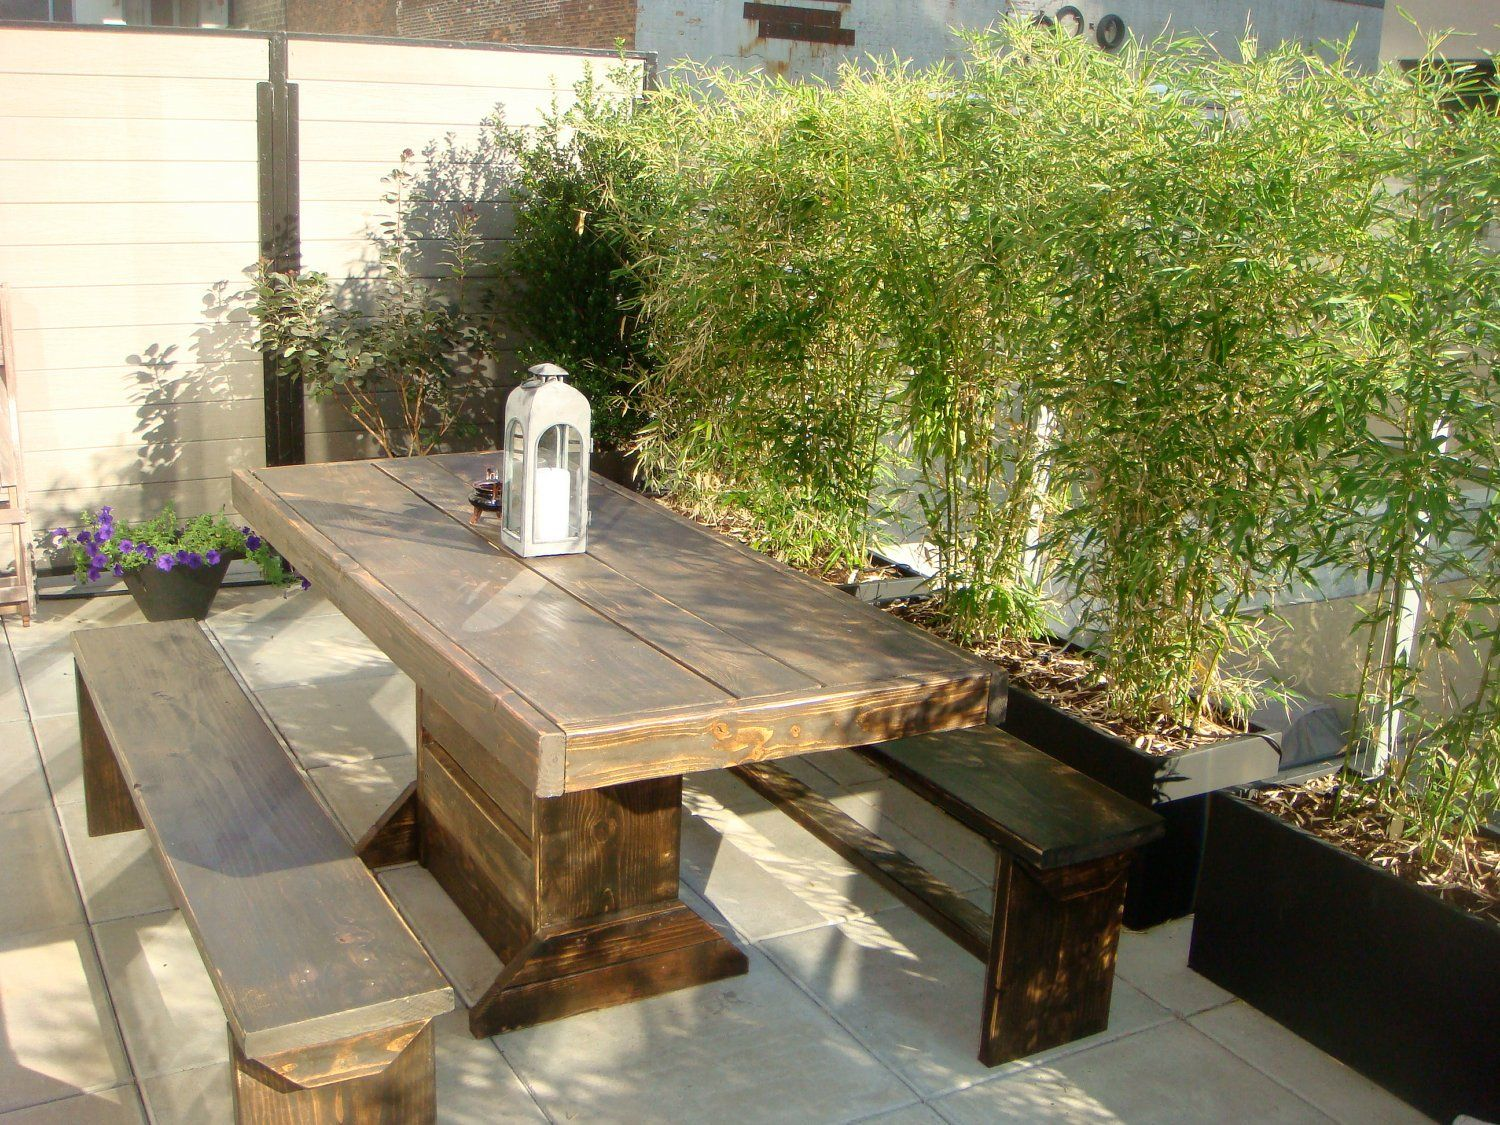 6 Foot Patio Table And Bench Set. The Set Includes 3u0027 X 6u0027